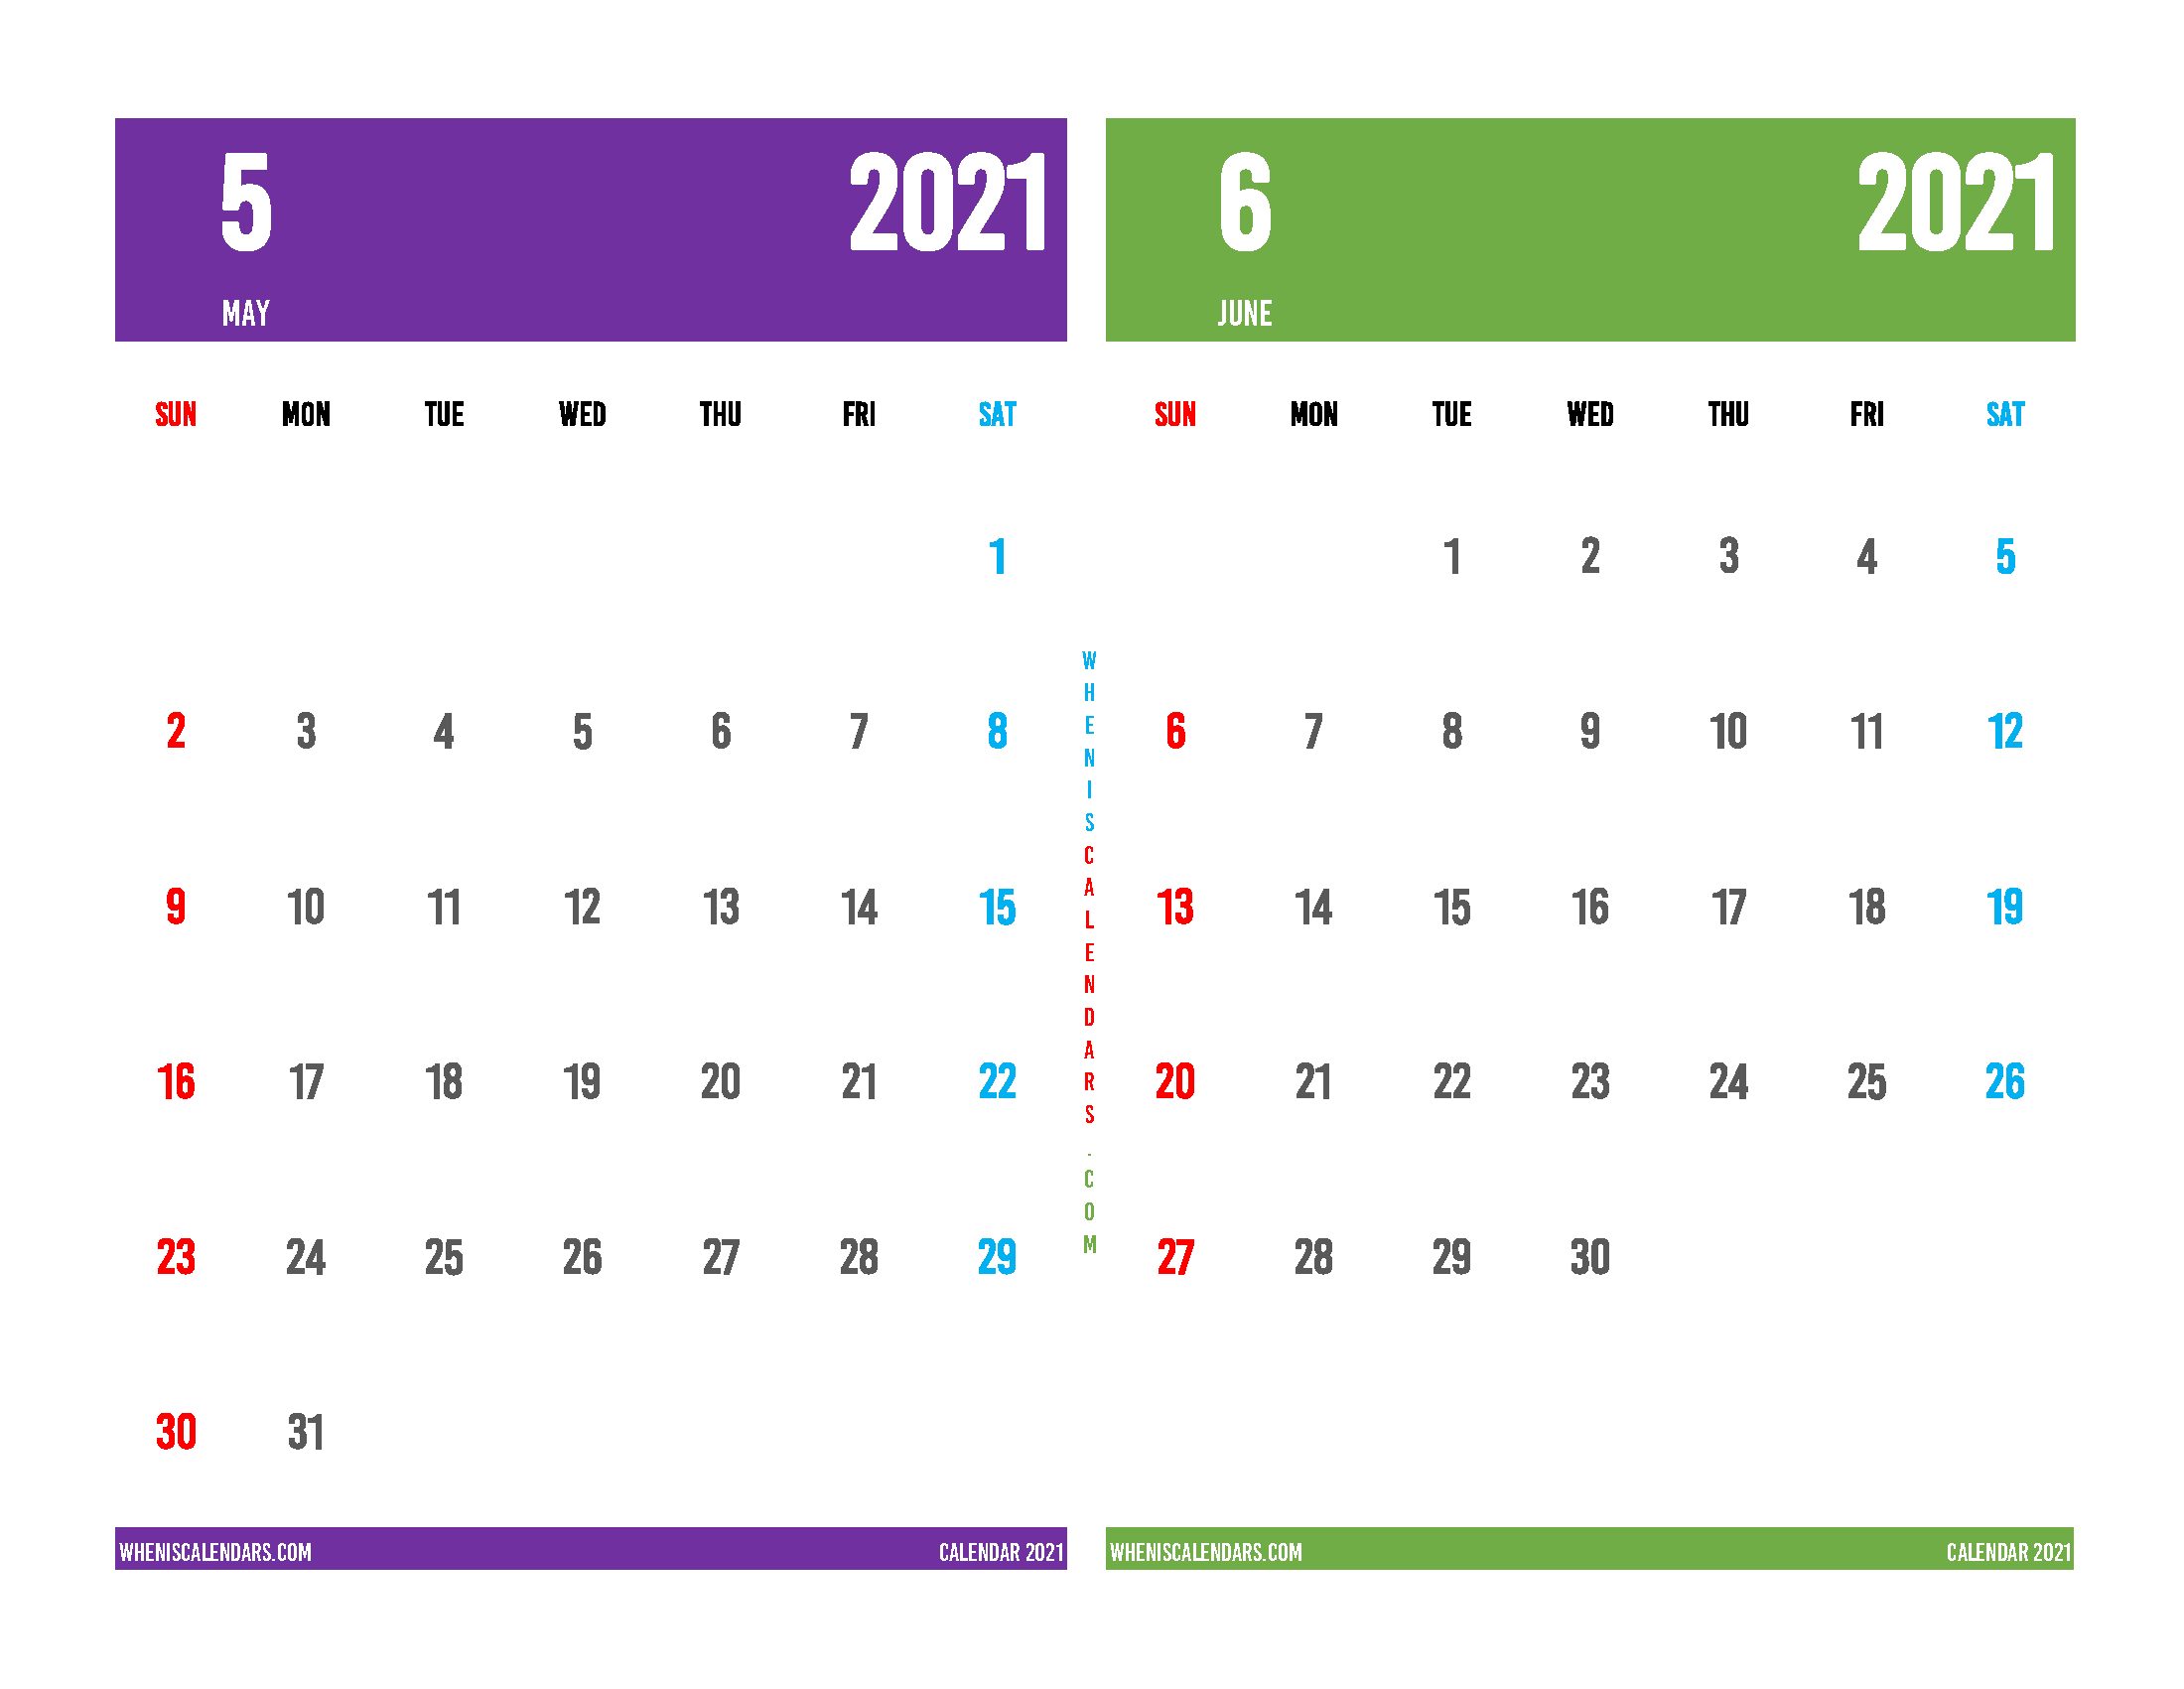 Calendar for May and June 2021